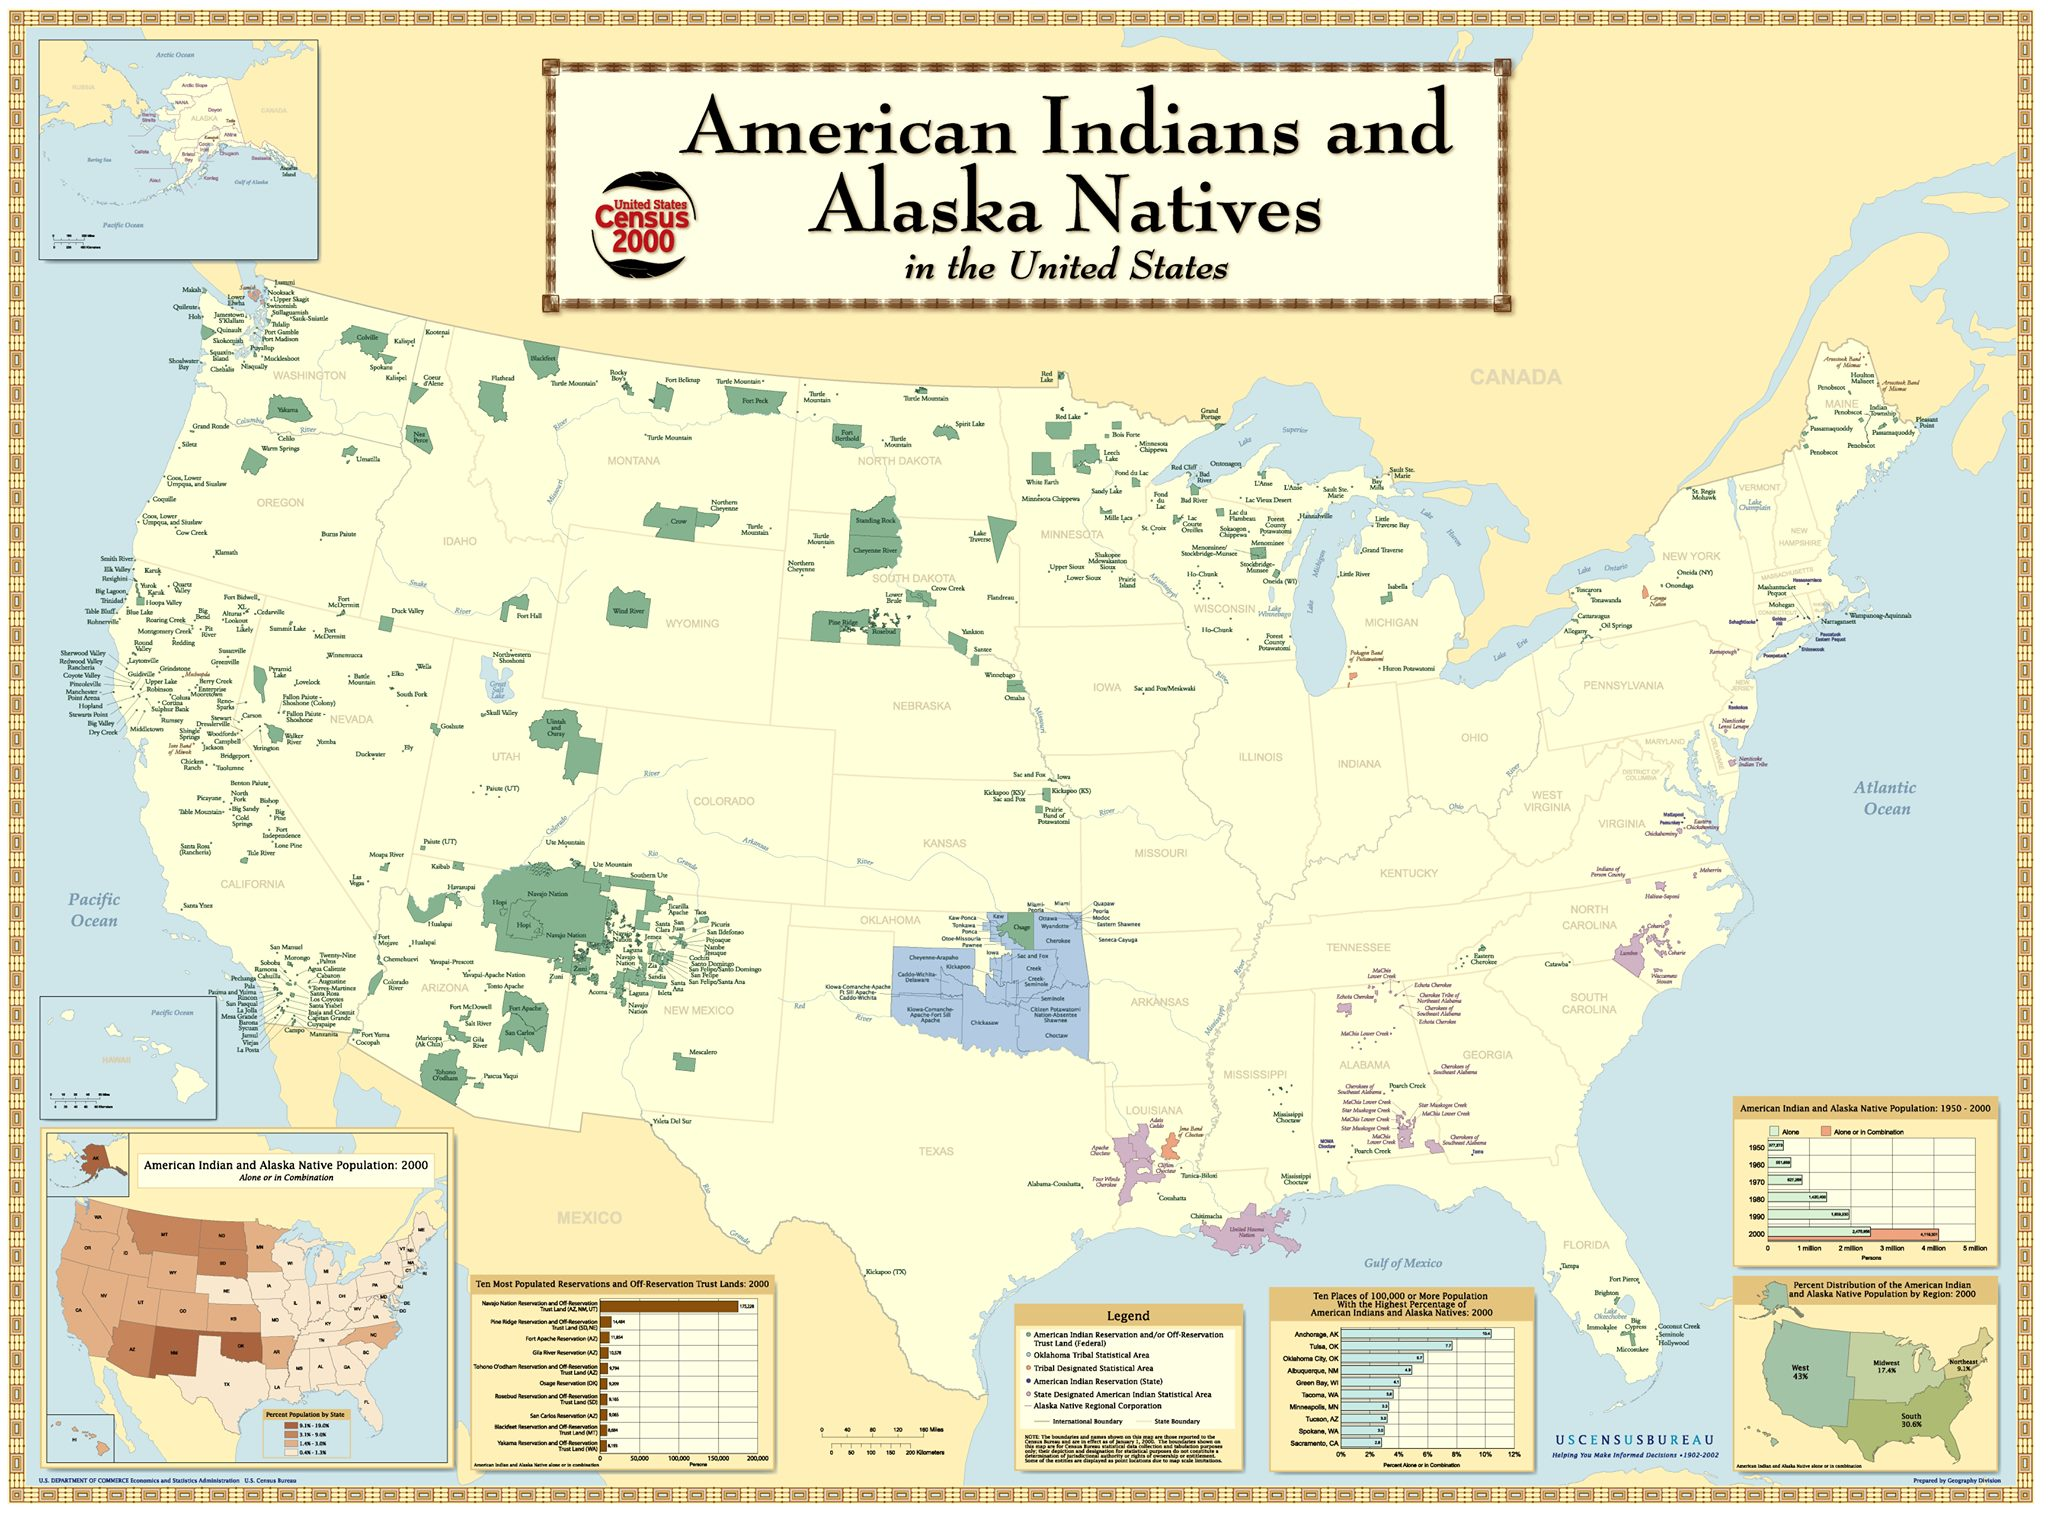 Online Program - Free History: American Indians and the U.S. Census Event Image